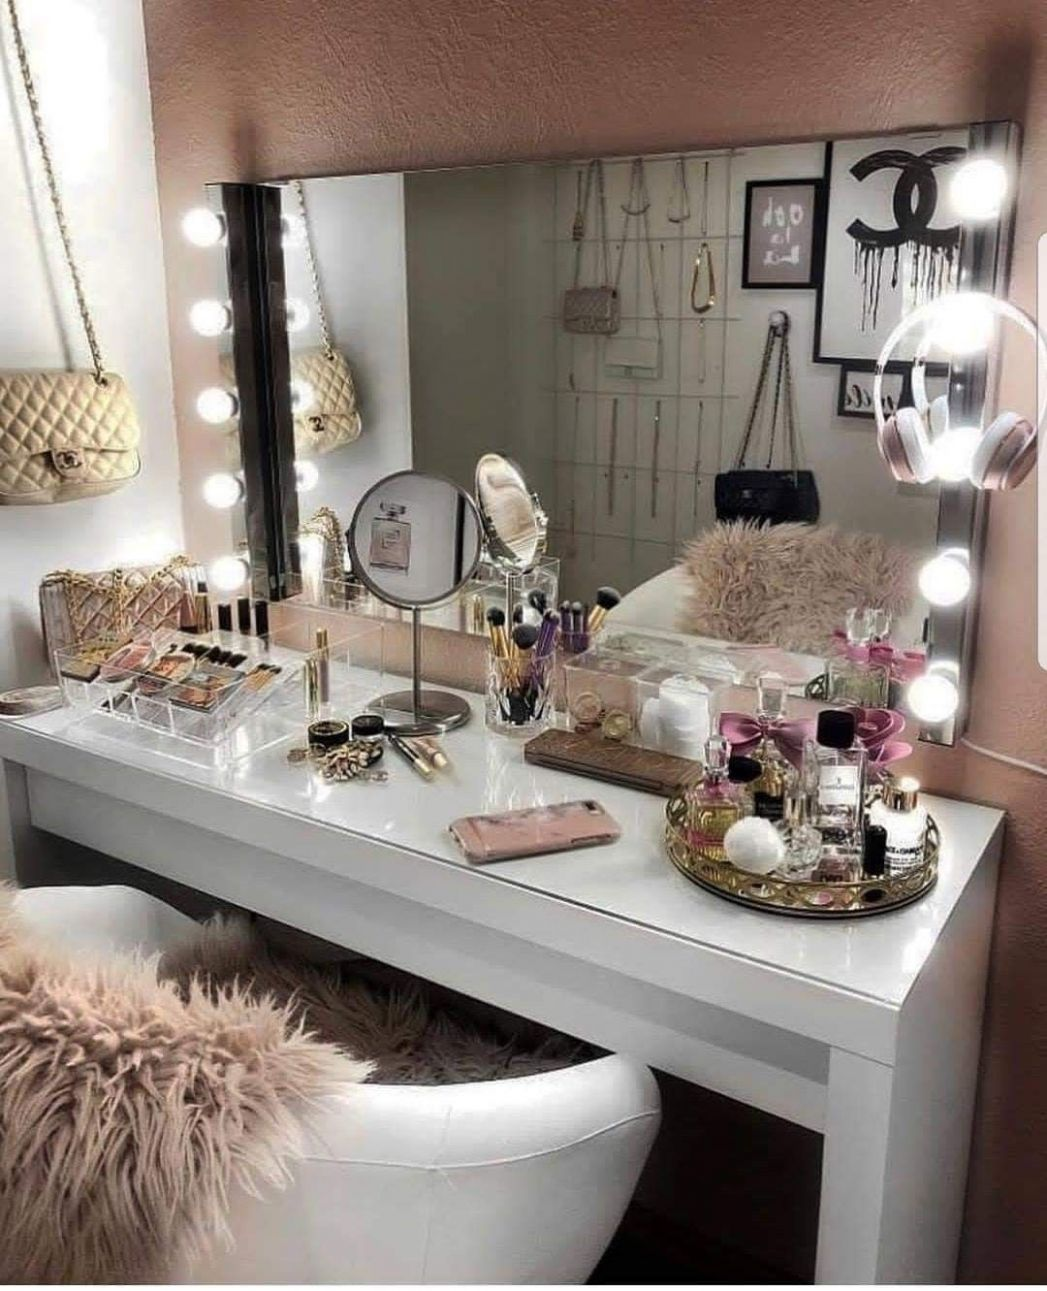 Makeup Organizers And Storage Ideas For Makeup Junkies | Stylish ...